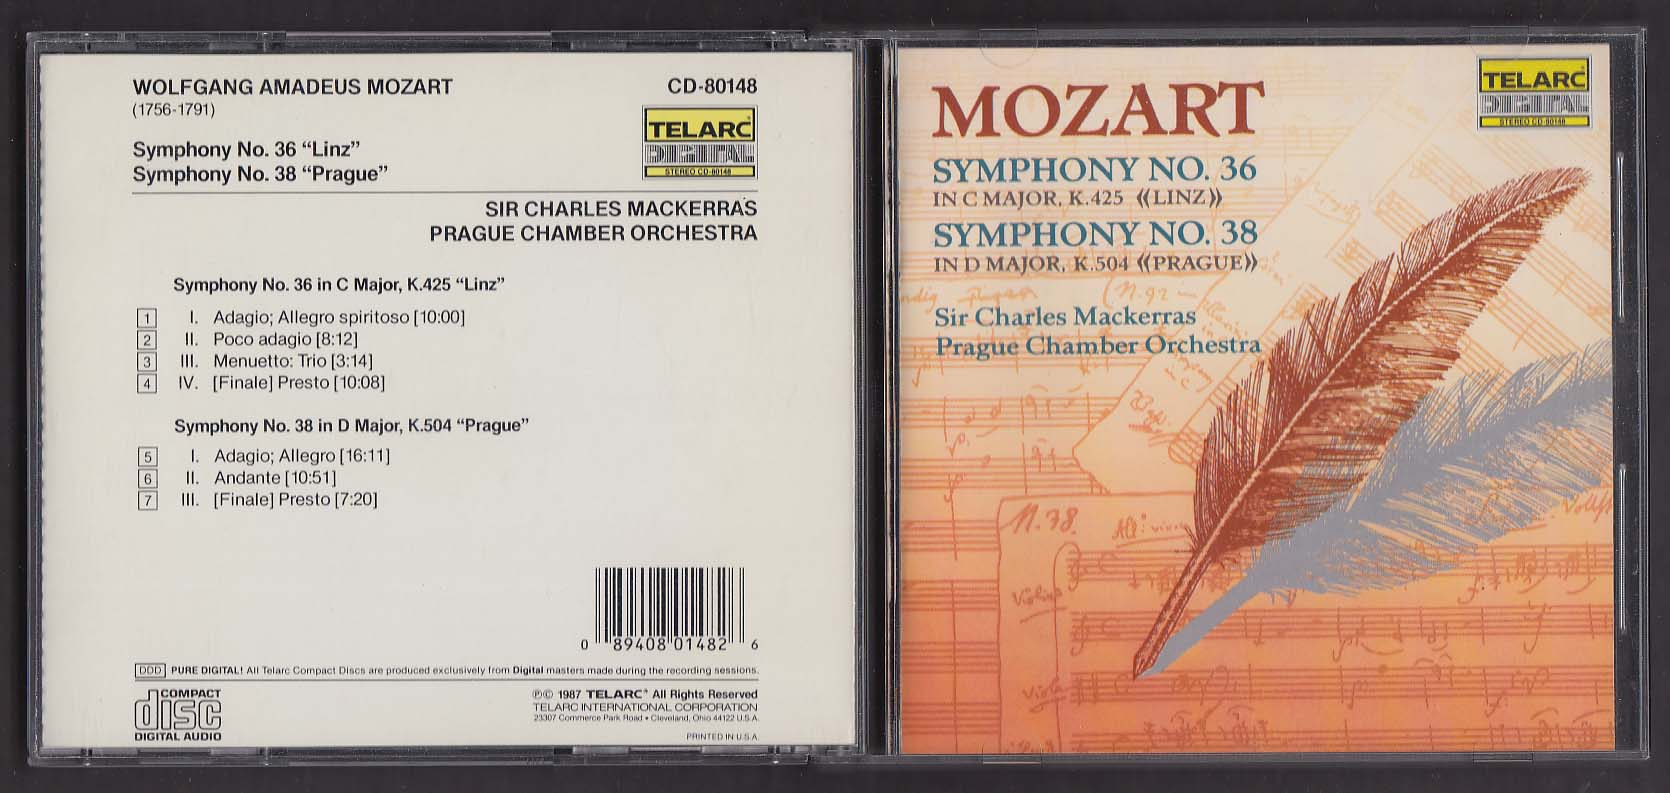 Image for Mozart Symphonies 36 & 38 Prague Chamber Orchestra Telarc CD-80148 CD 1987